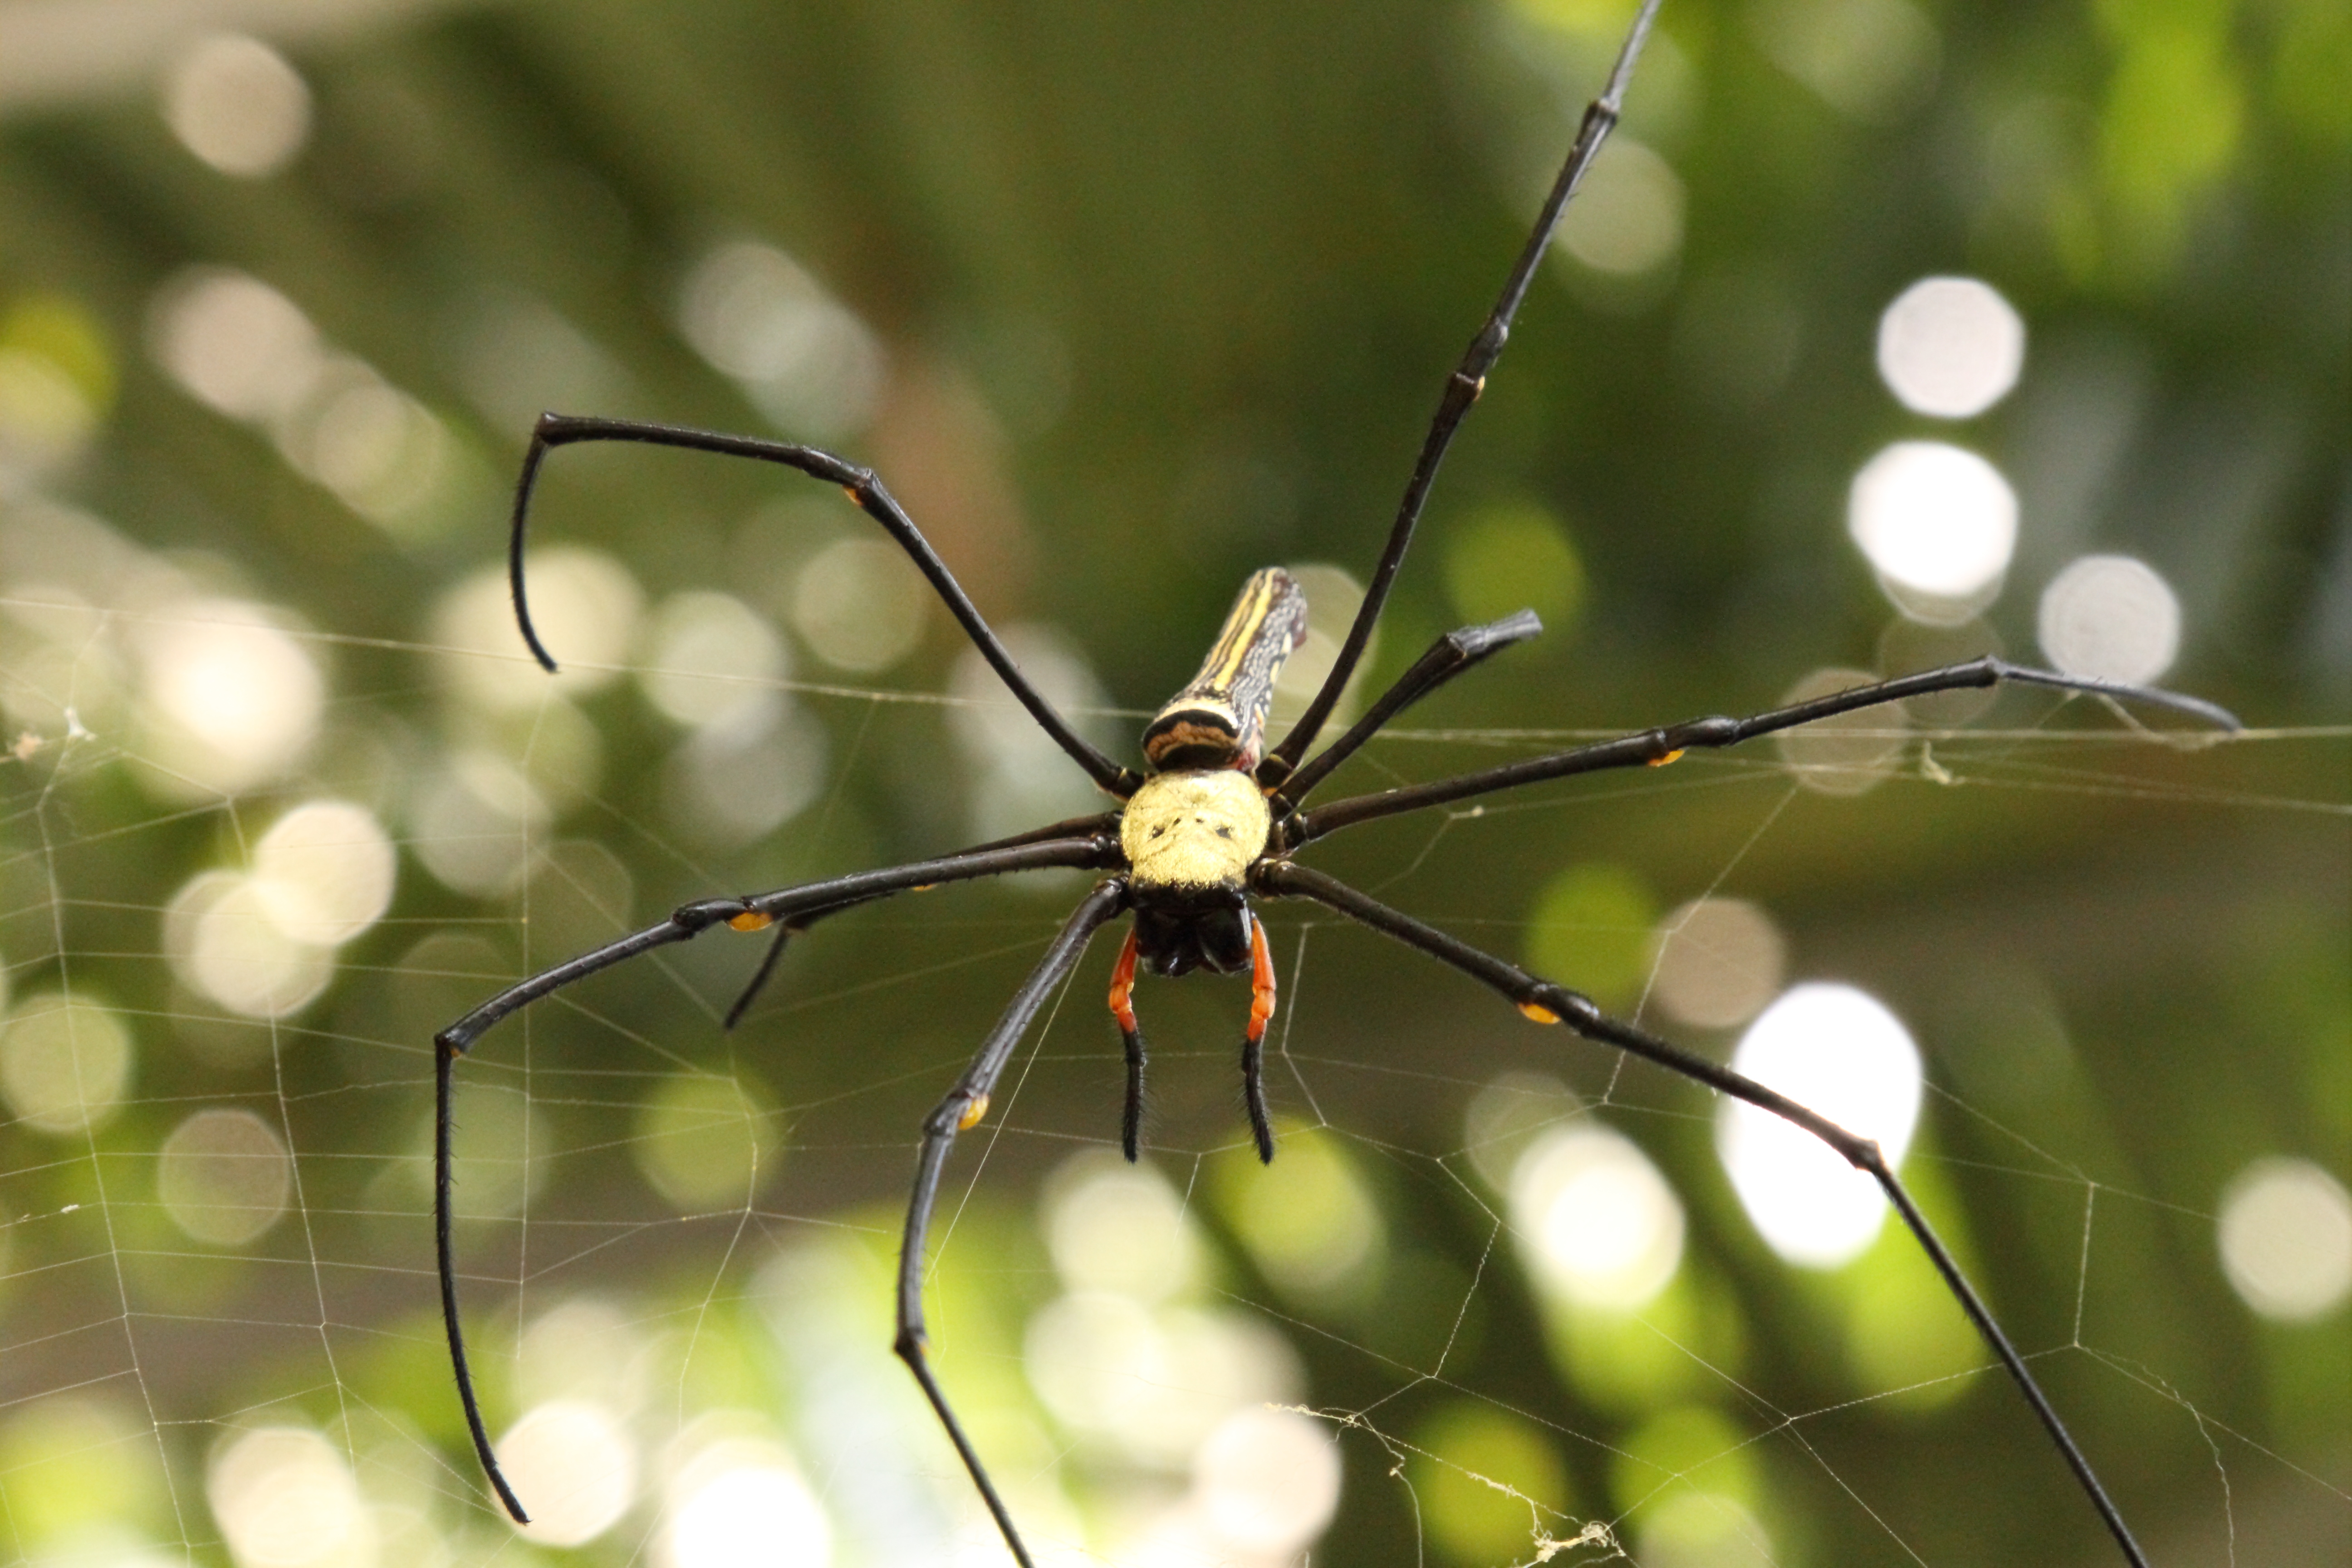 File:Spider in the Mekong Delta (4176497230) jpg - Wikimedia